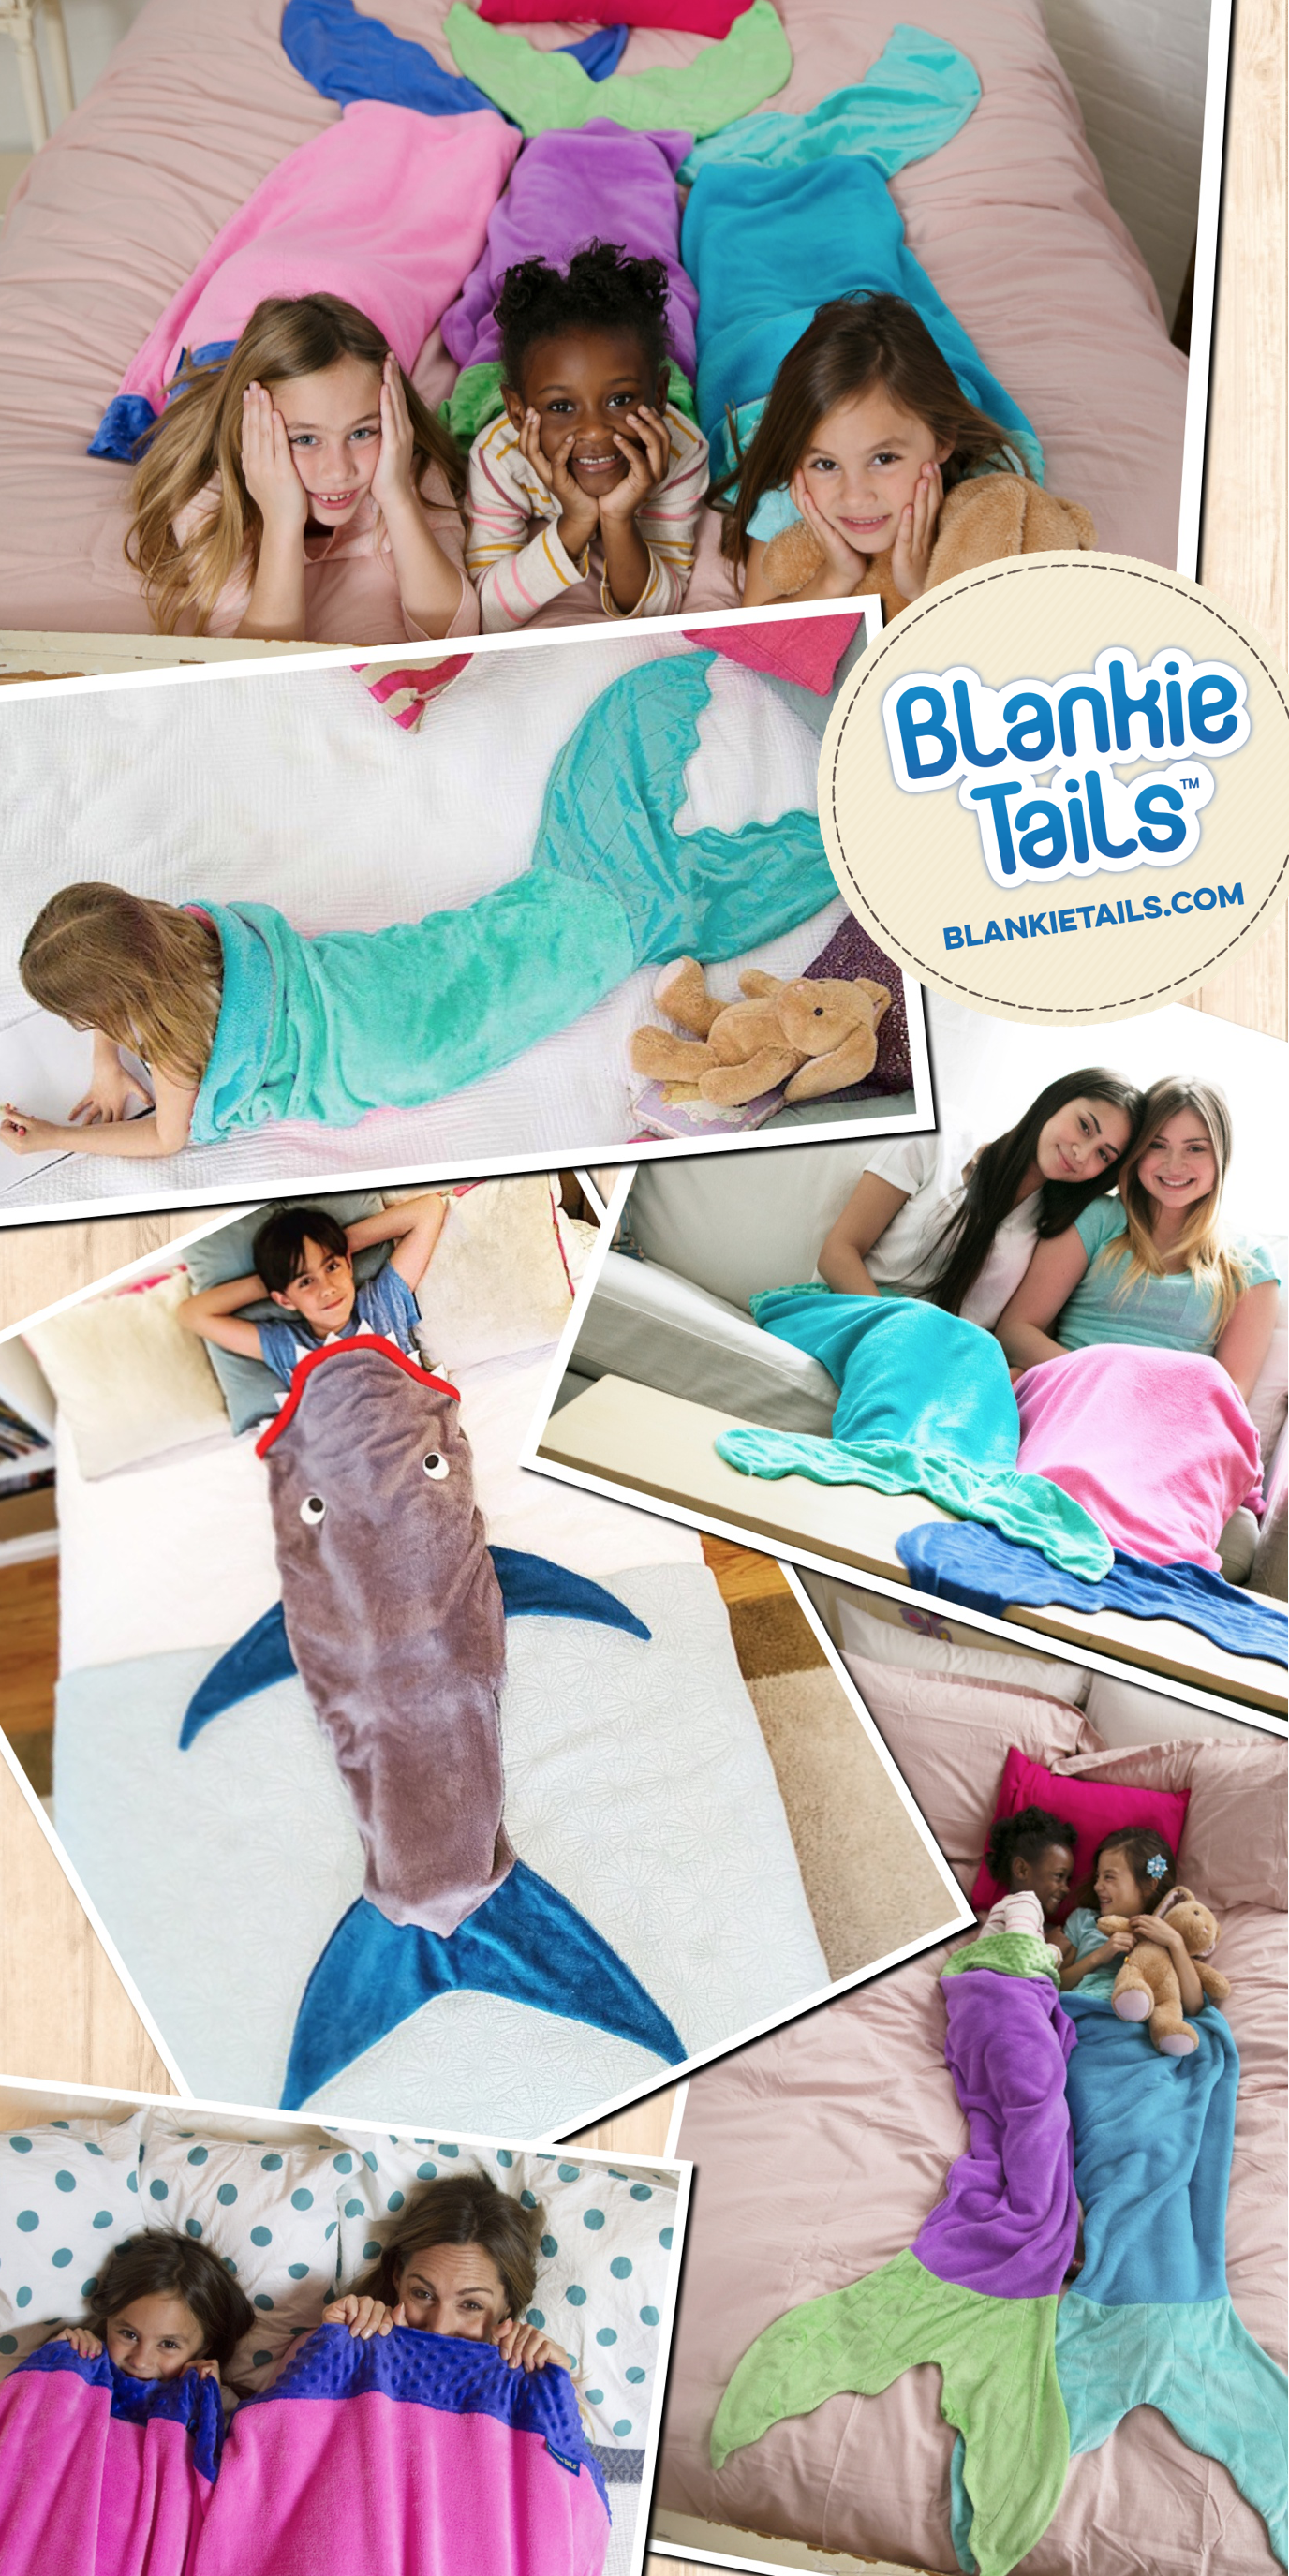 If your kids dream of being mermaids, they will flip over Blankie Tails™ mermaid tail blankets! If they dream of being sharks? Well, take a look! Blank Tails™ is creator of The Original Mermaid Blanket™ and Shark Blanket™